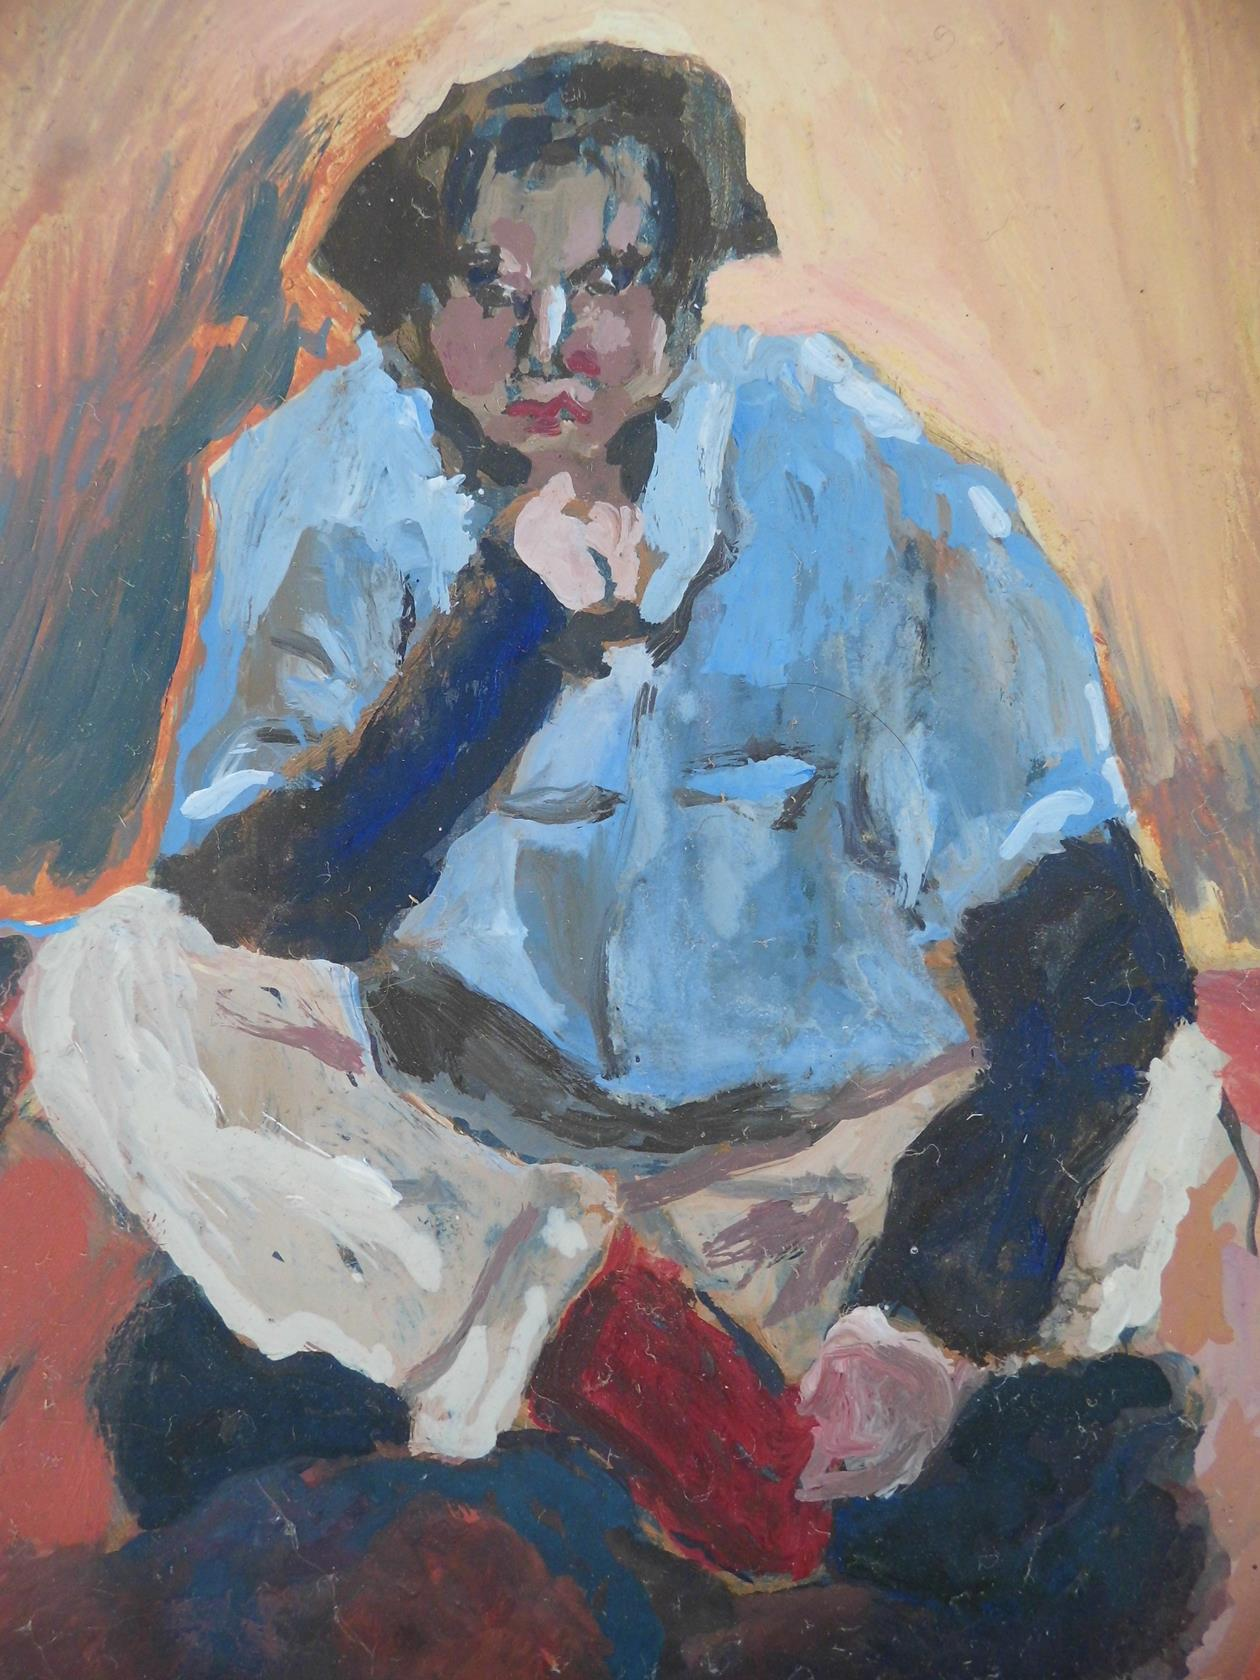 'What Are You Staring At?' From the 'Cross Legged Series' Oil on Board 1995